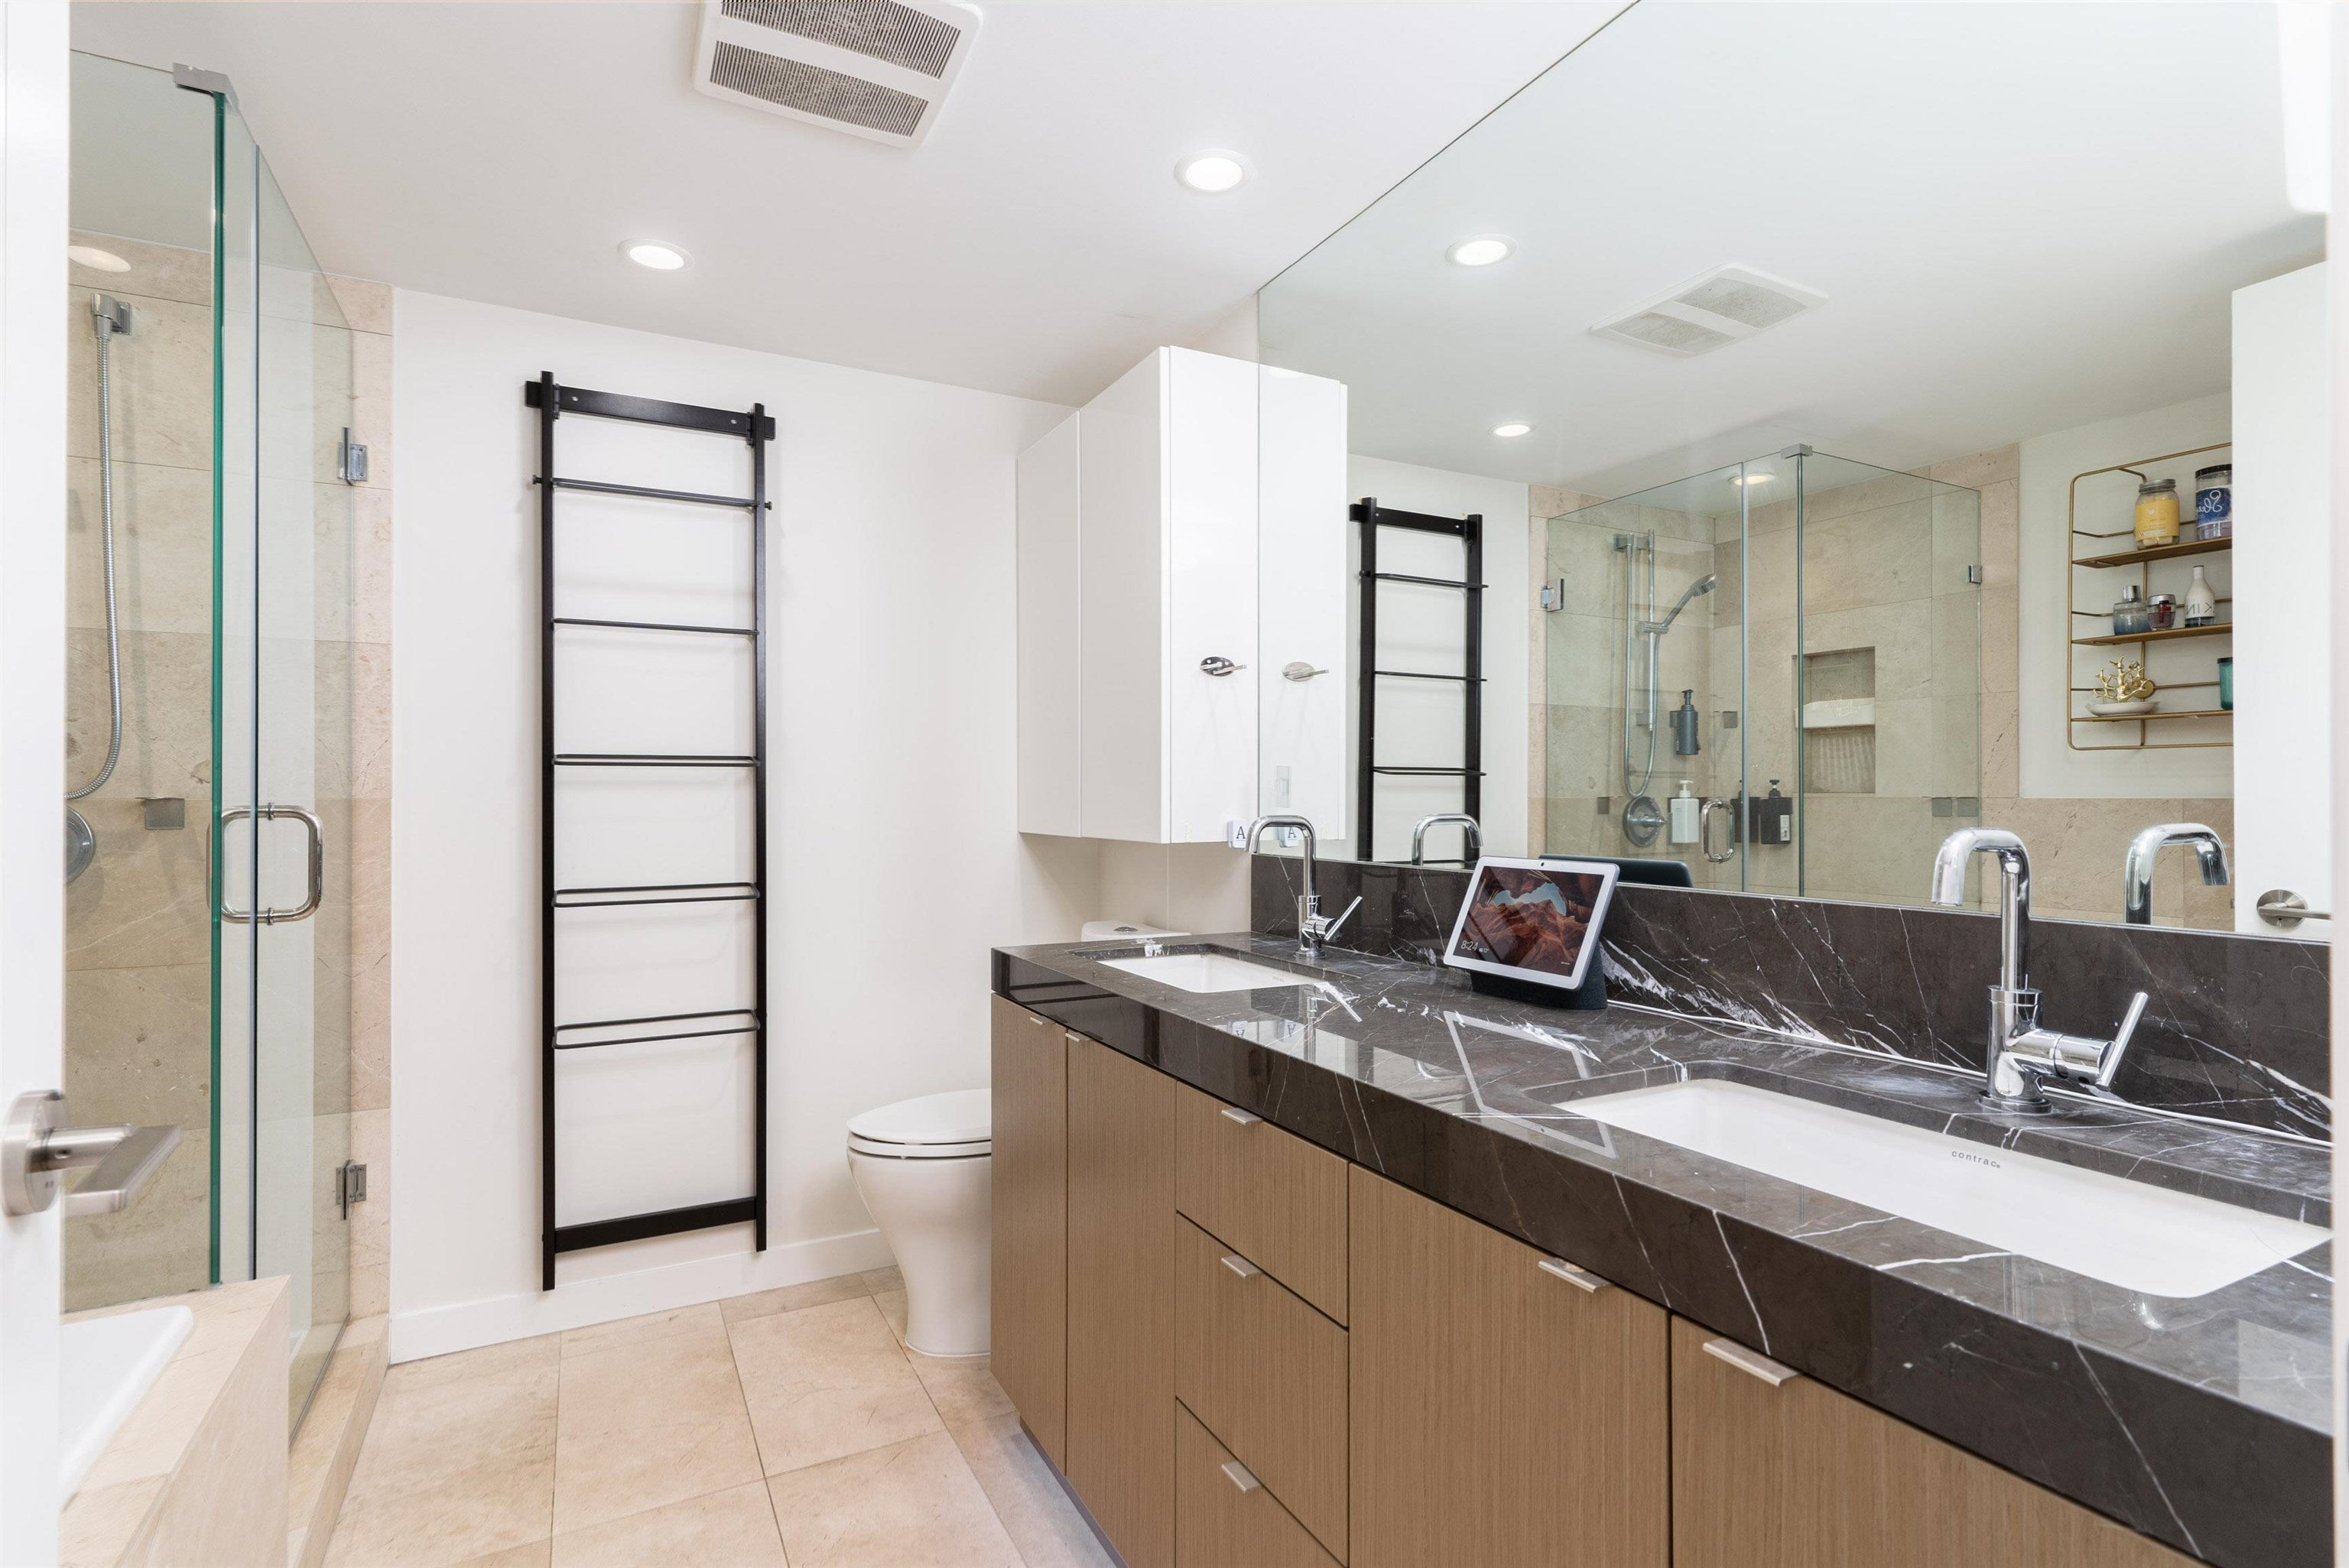 306 112 E 13TH STREET - Central Lonsdale Apartment/Condo for sale, 2 Bedrooms (R2619655) - #18